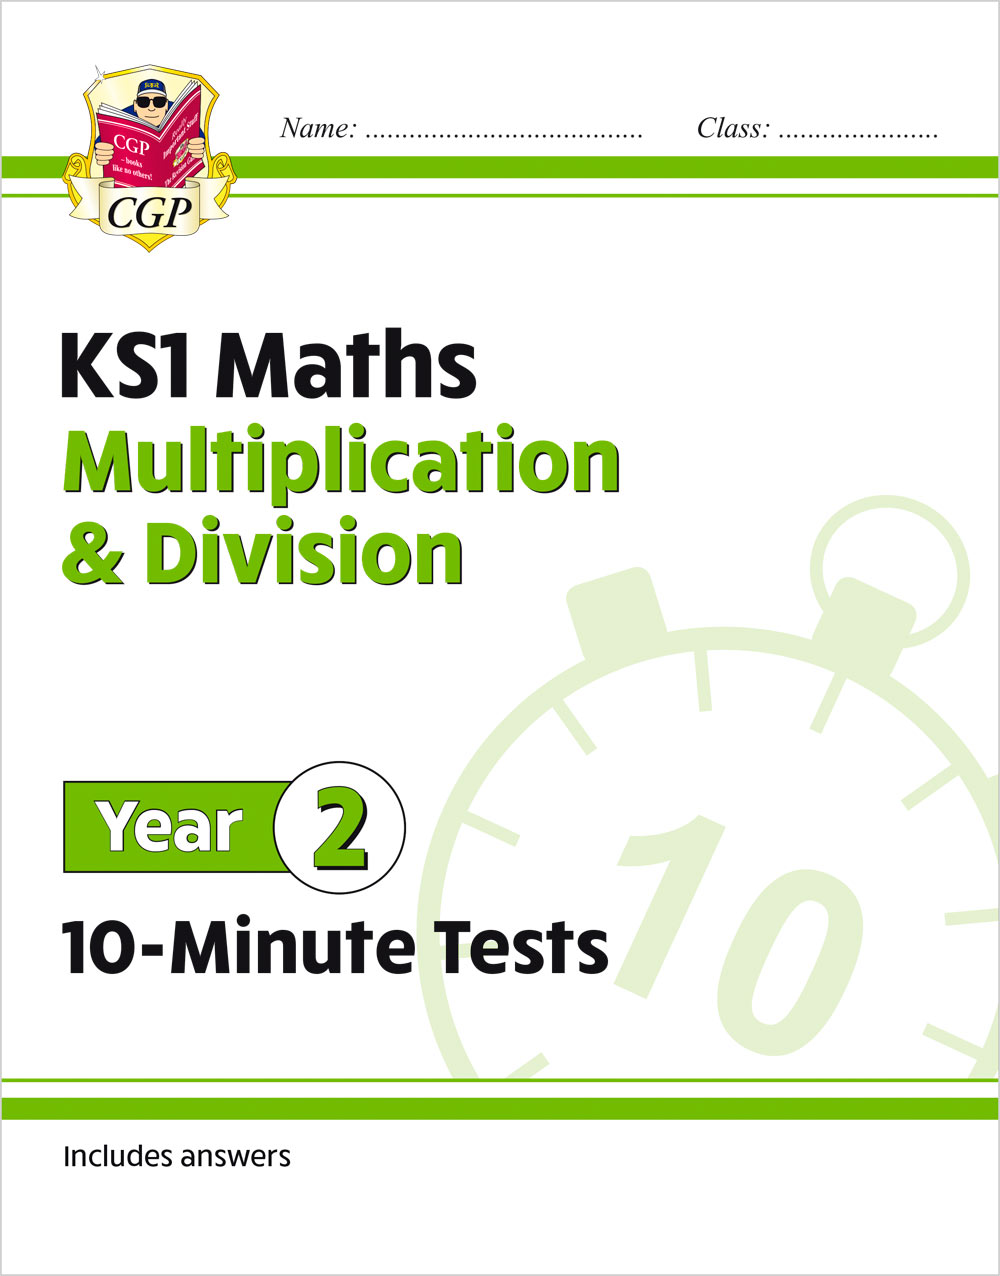 M2MDXP11 - New KS1 Maths 10-Minute Tests: Multiplication & Division - Year 2